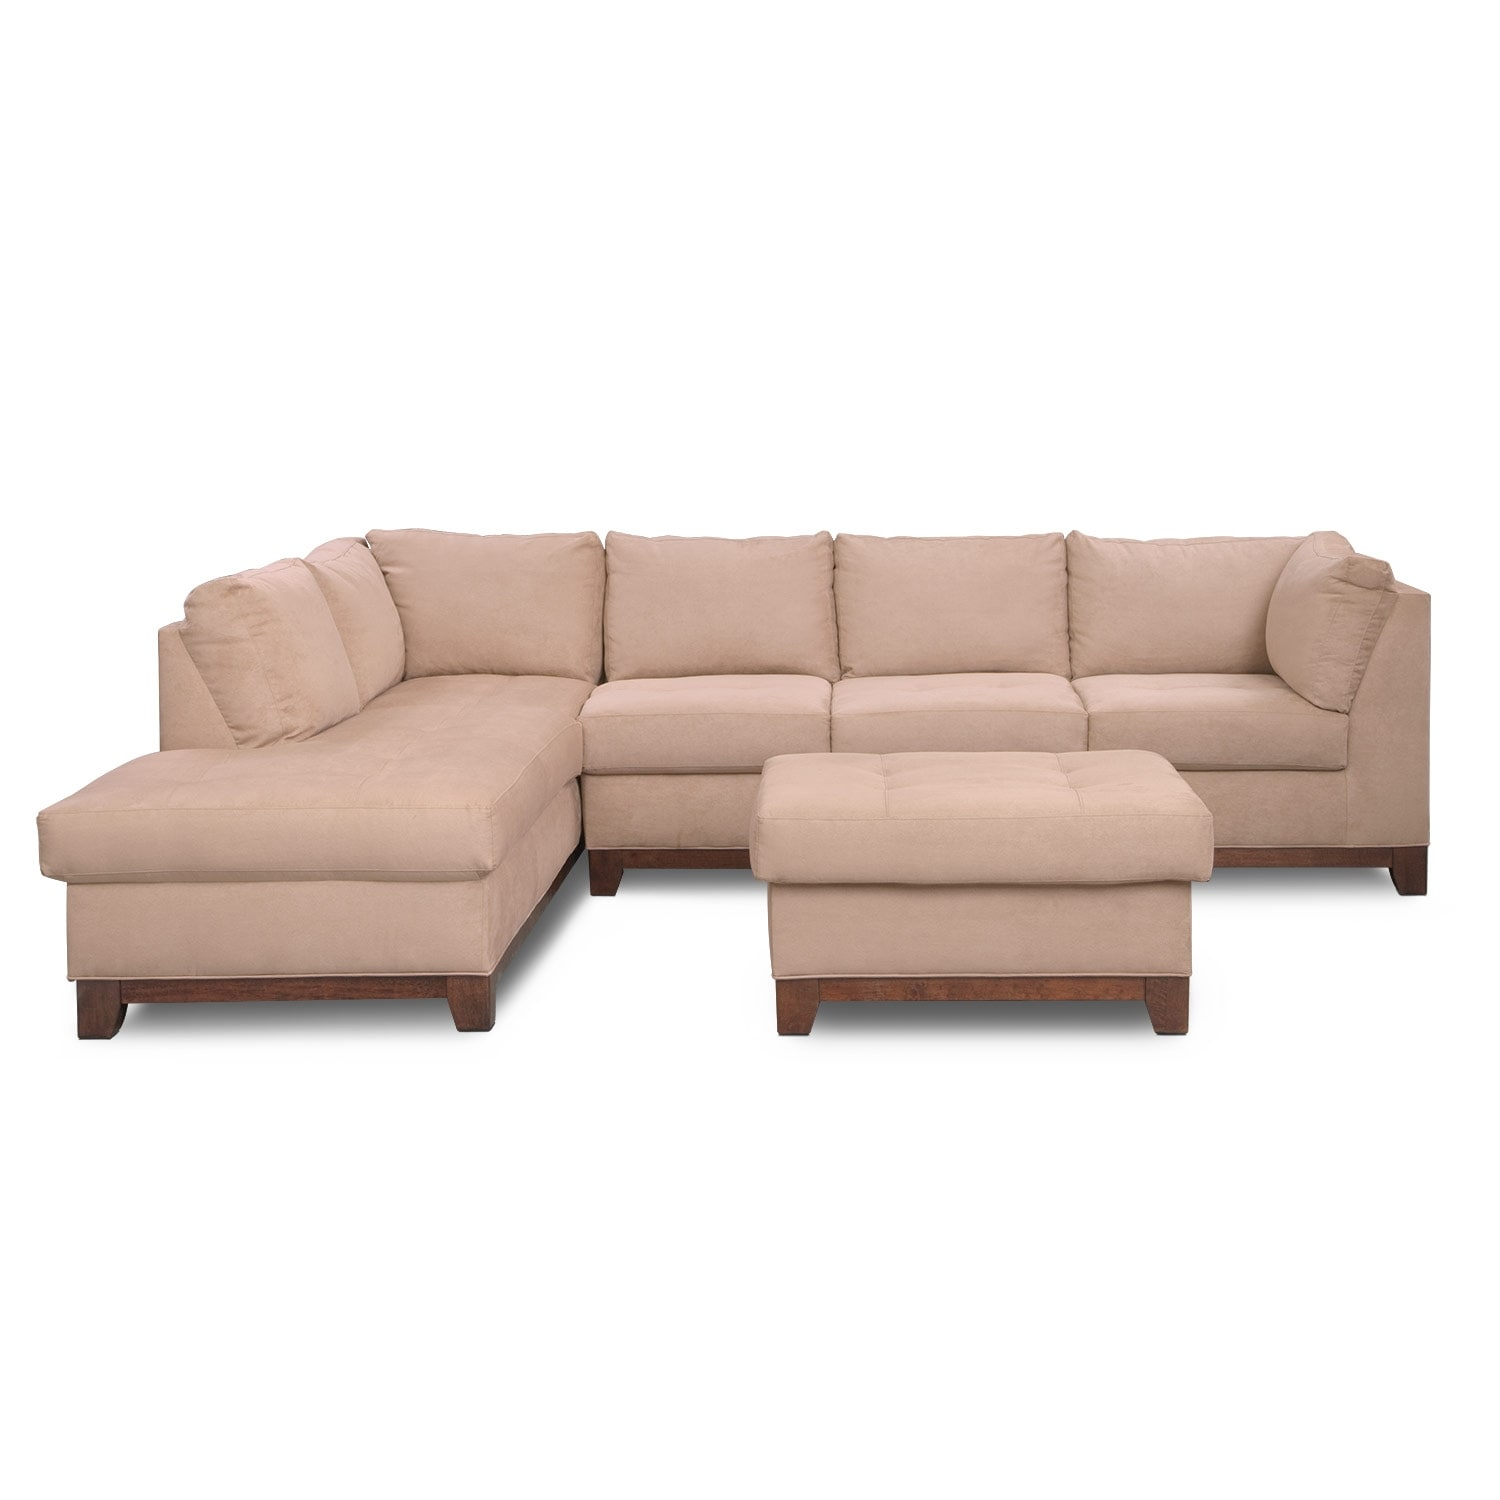 Soho 2 piece sectional with left facing chaise and ottoman for American signature furniture commercial chaise